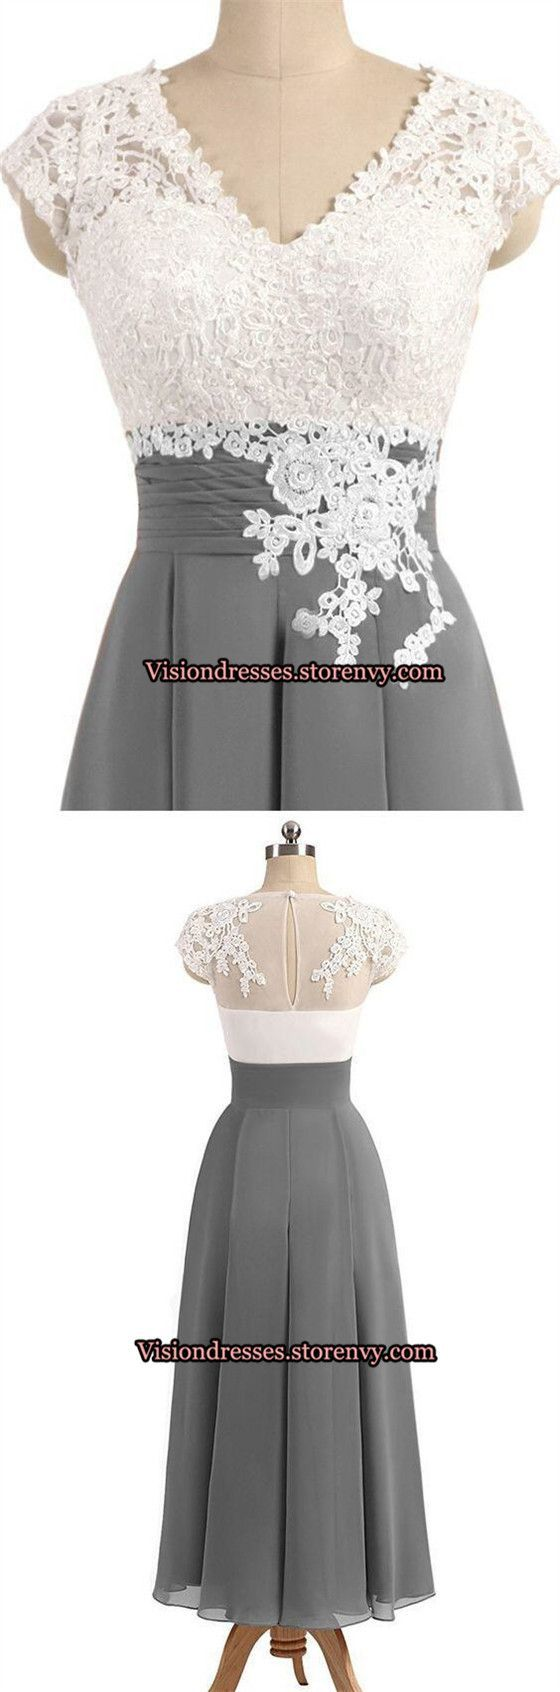 Grey bridesmaid dresses with lace appliques vneck cap sleeves long